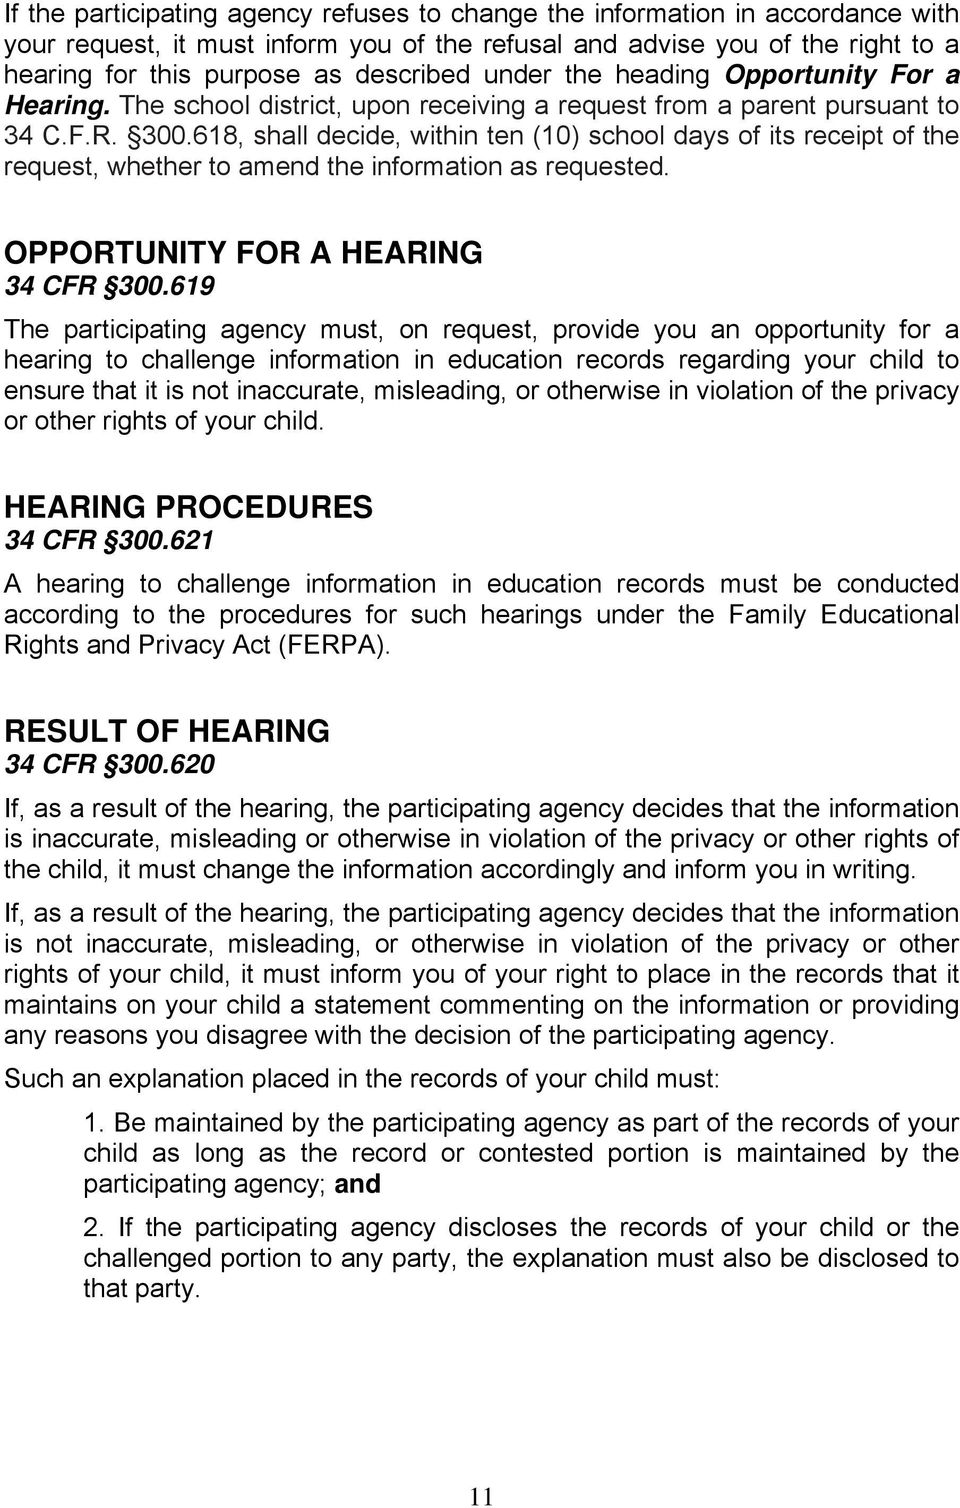 618, shall decide, within ten (10) school days of its receipt of the request, whether to amend the information as requested. OPPORTUNITY FOR A HEARING 34 CFR 300.